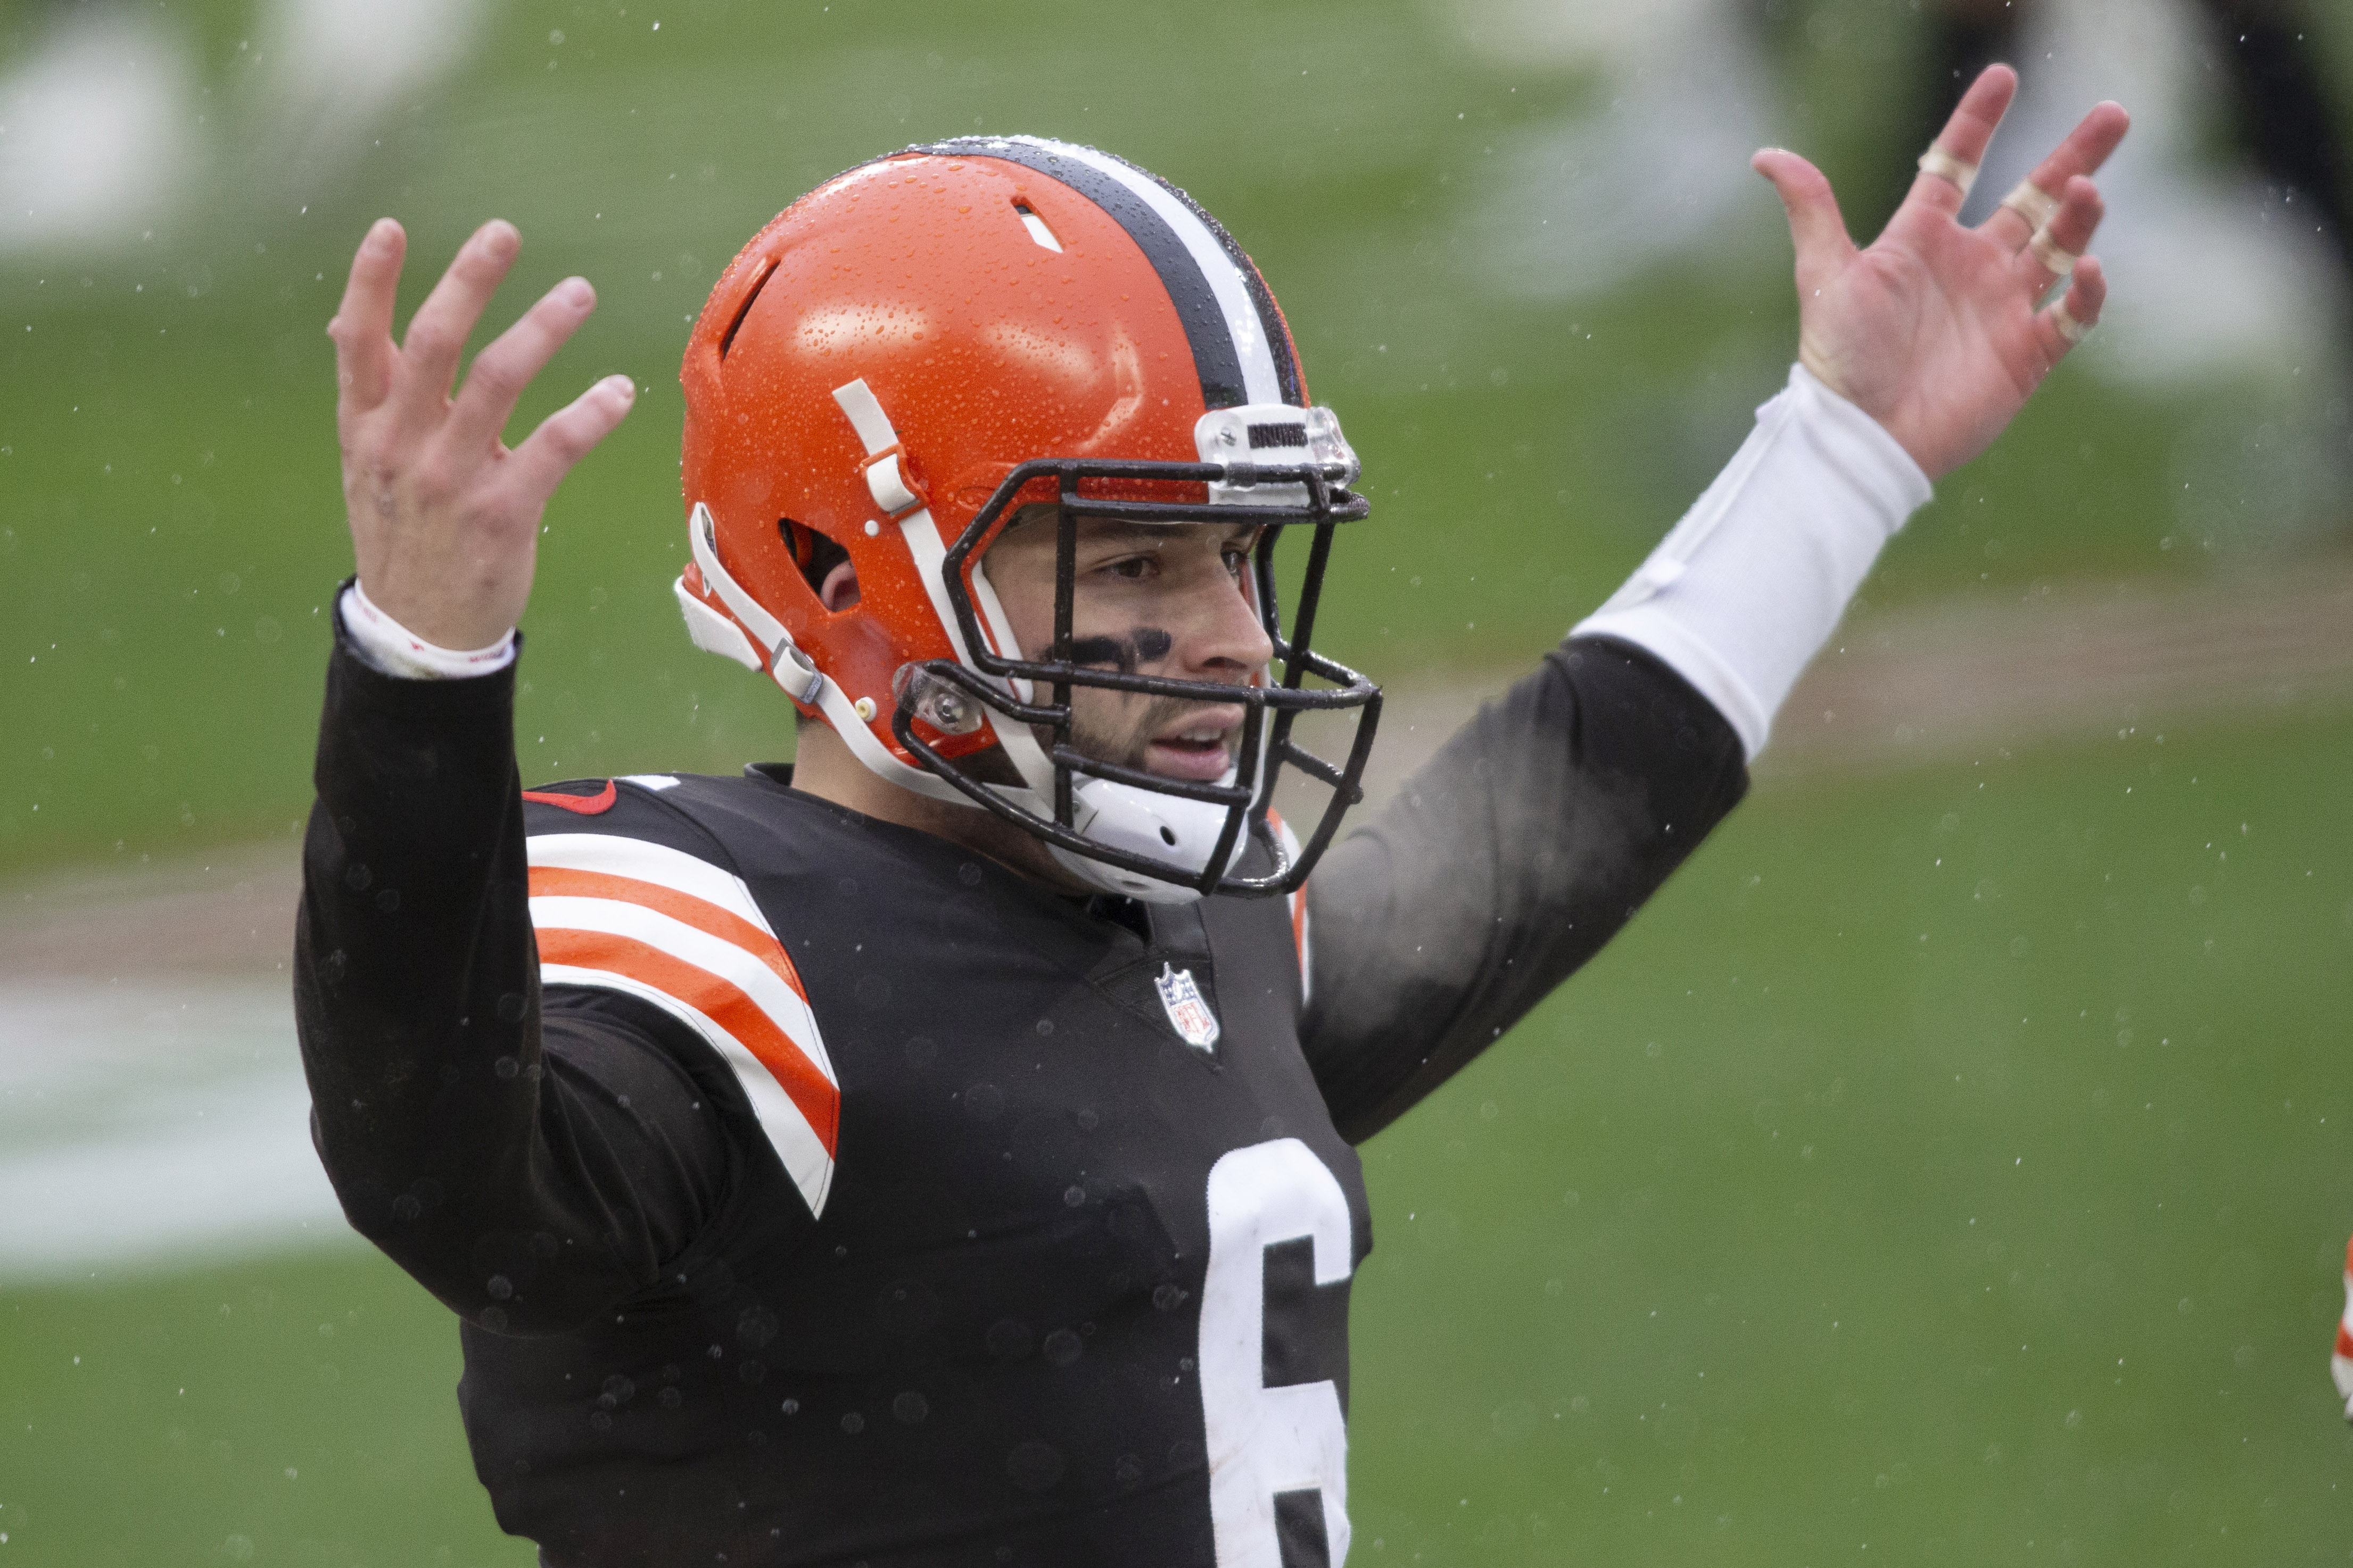 NFL: Philadelphia Eagles at Cleveland Browns